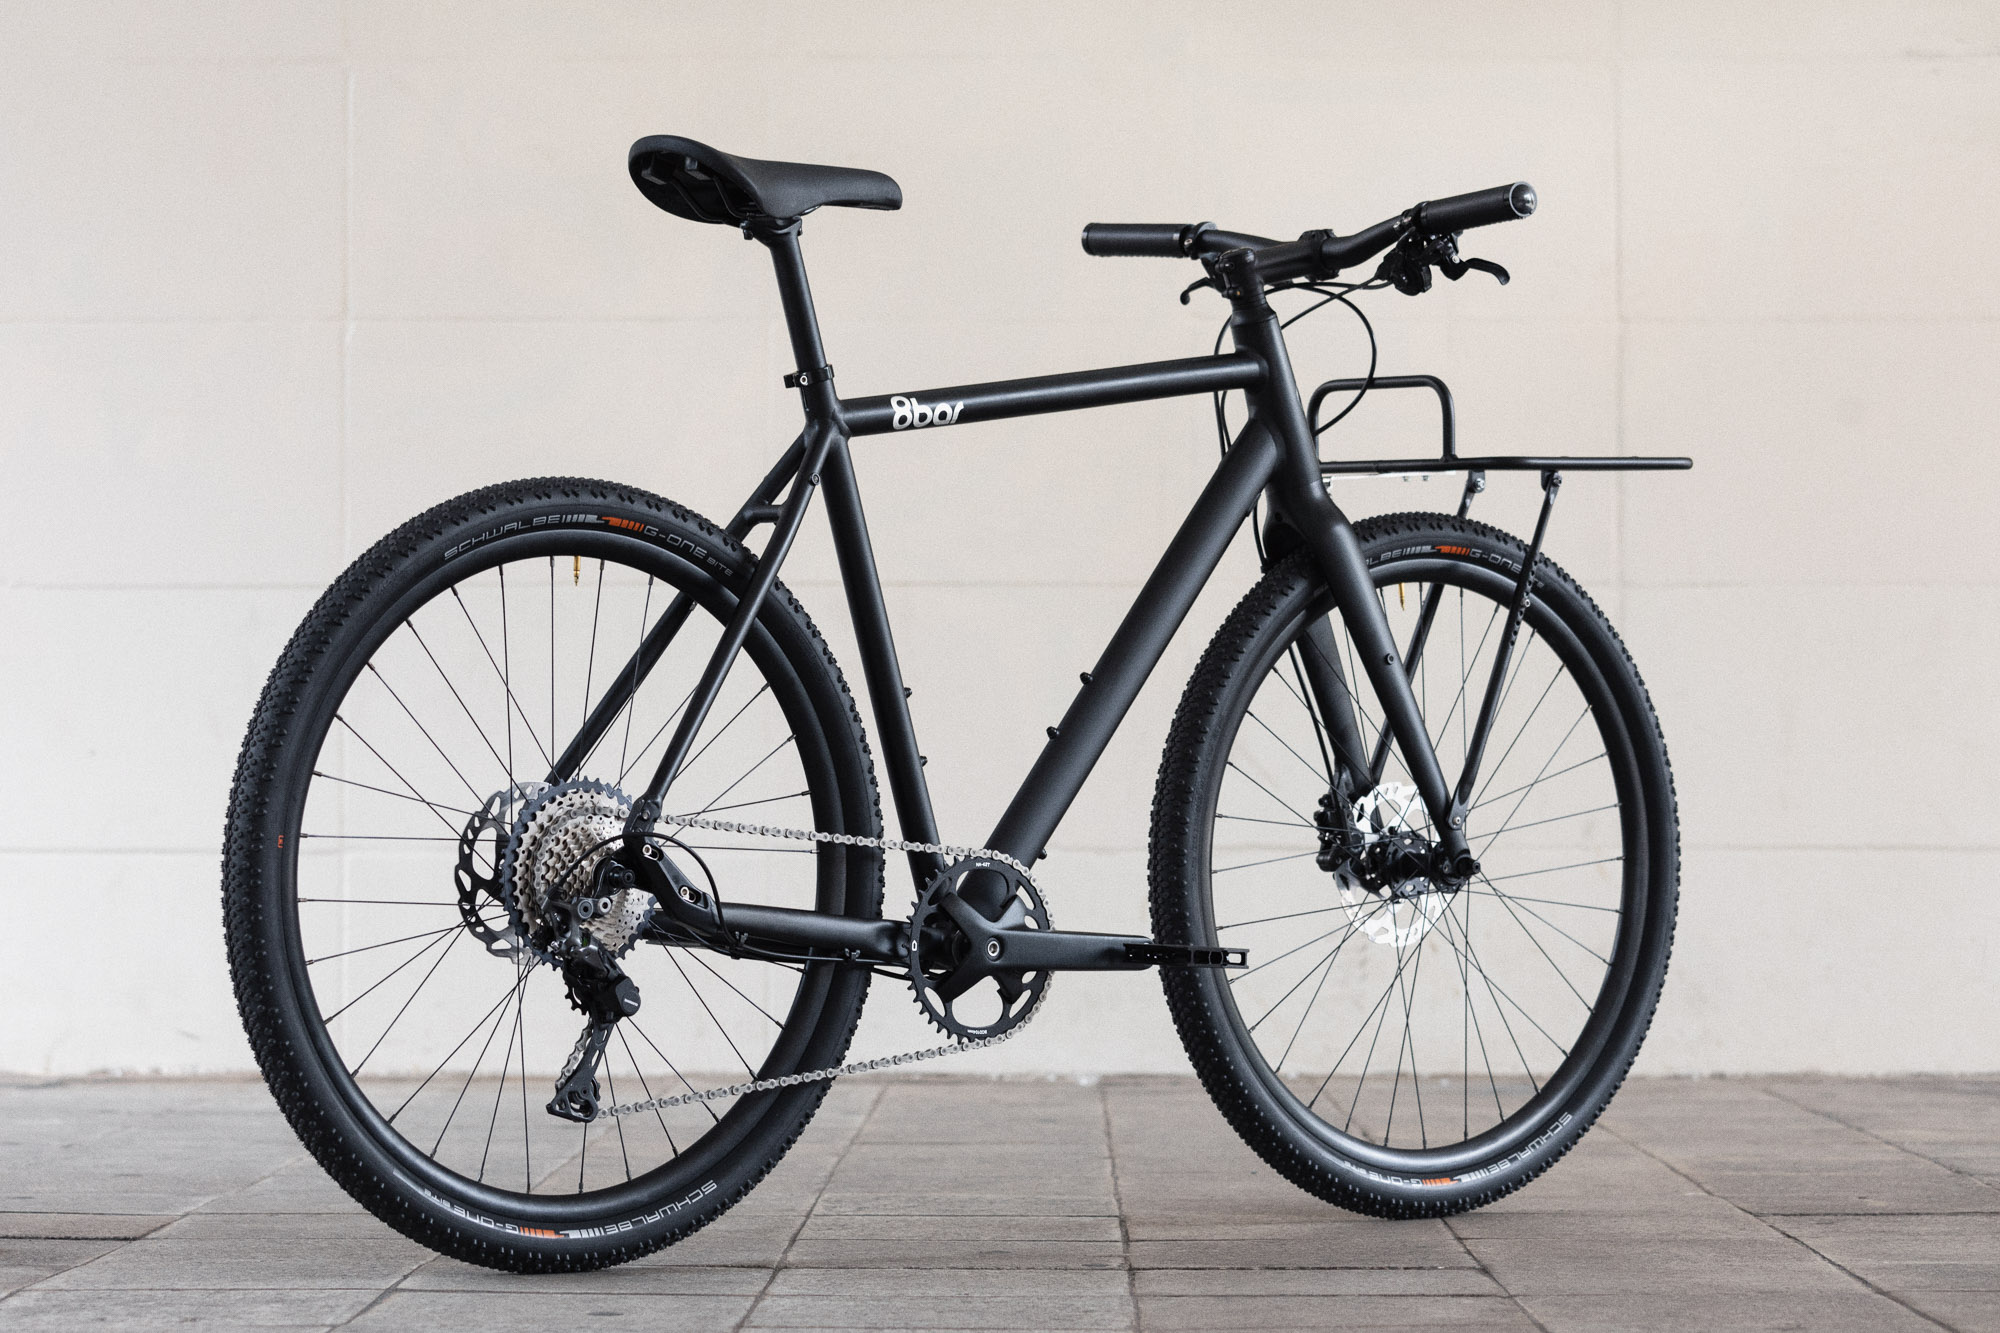 8bar complete bike mitte black urban lr-4